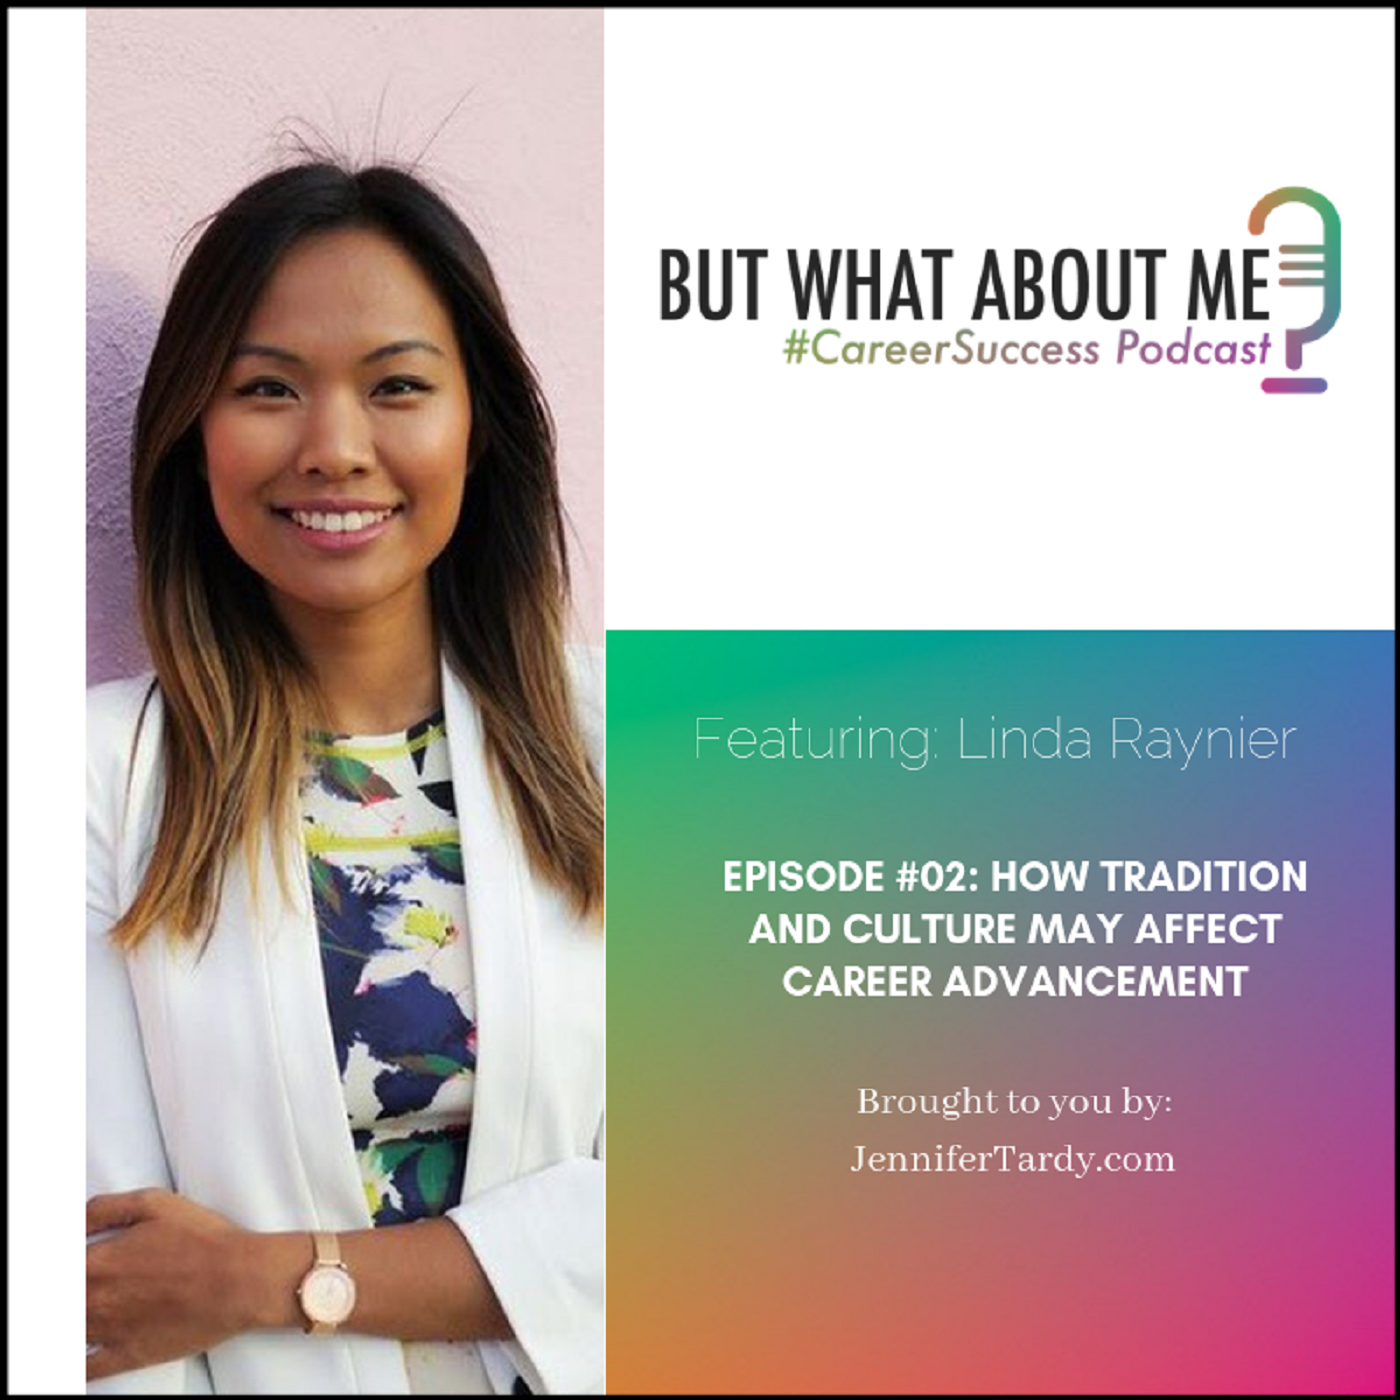 Episode 02: How Tradition and Culture May Affect Career Advancement